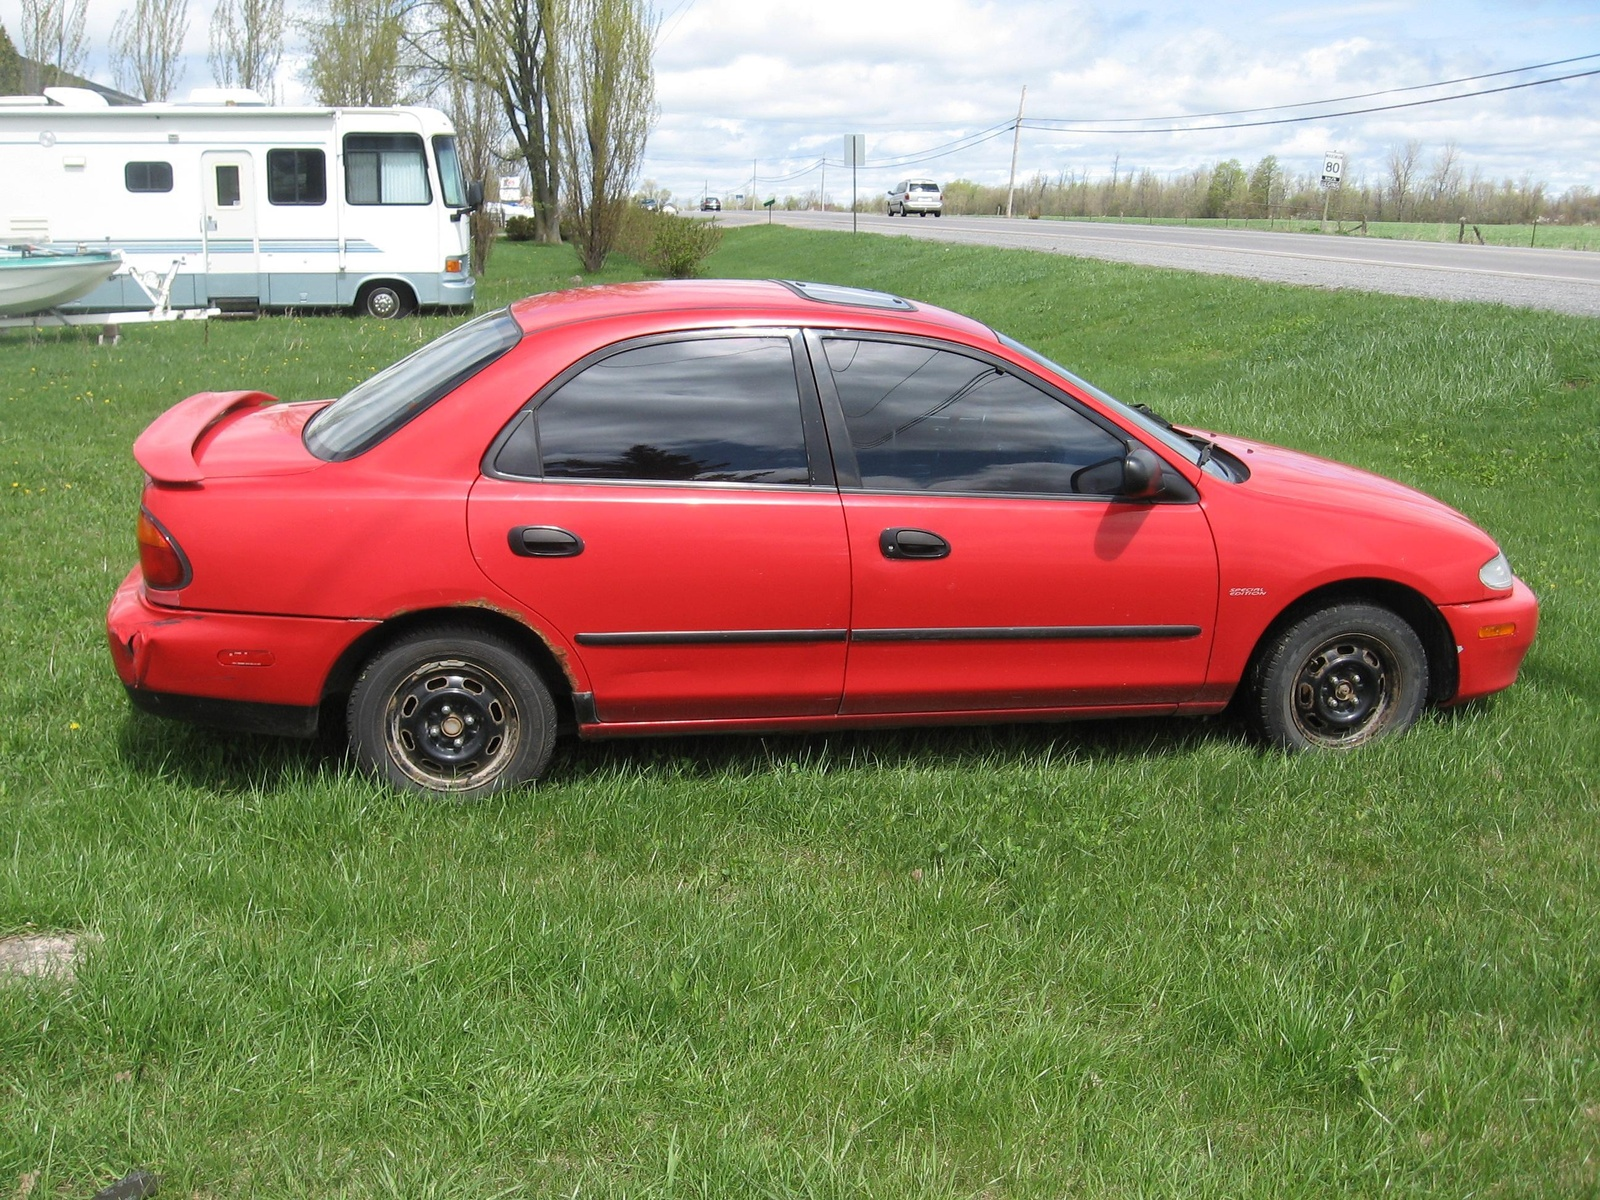 1996 Mazda Protege 4 Dr ES Sedan picture